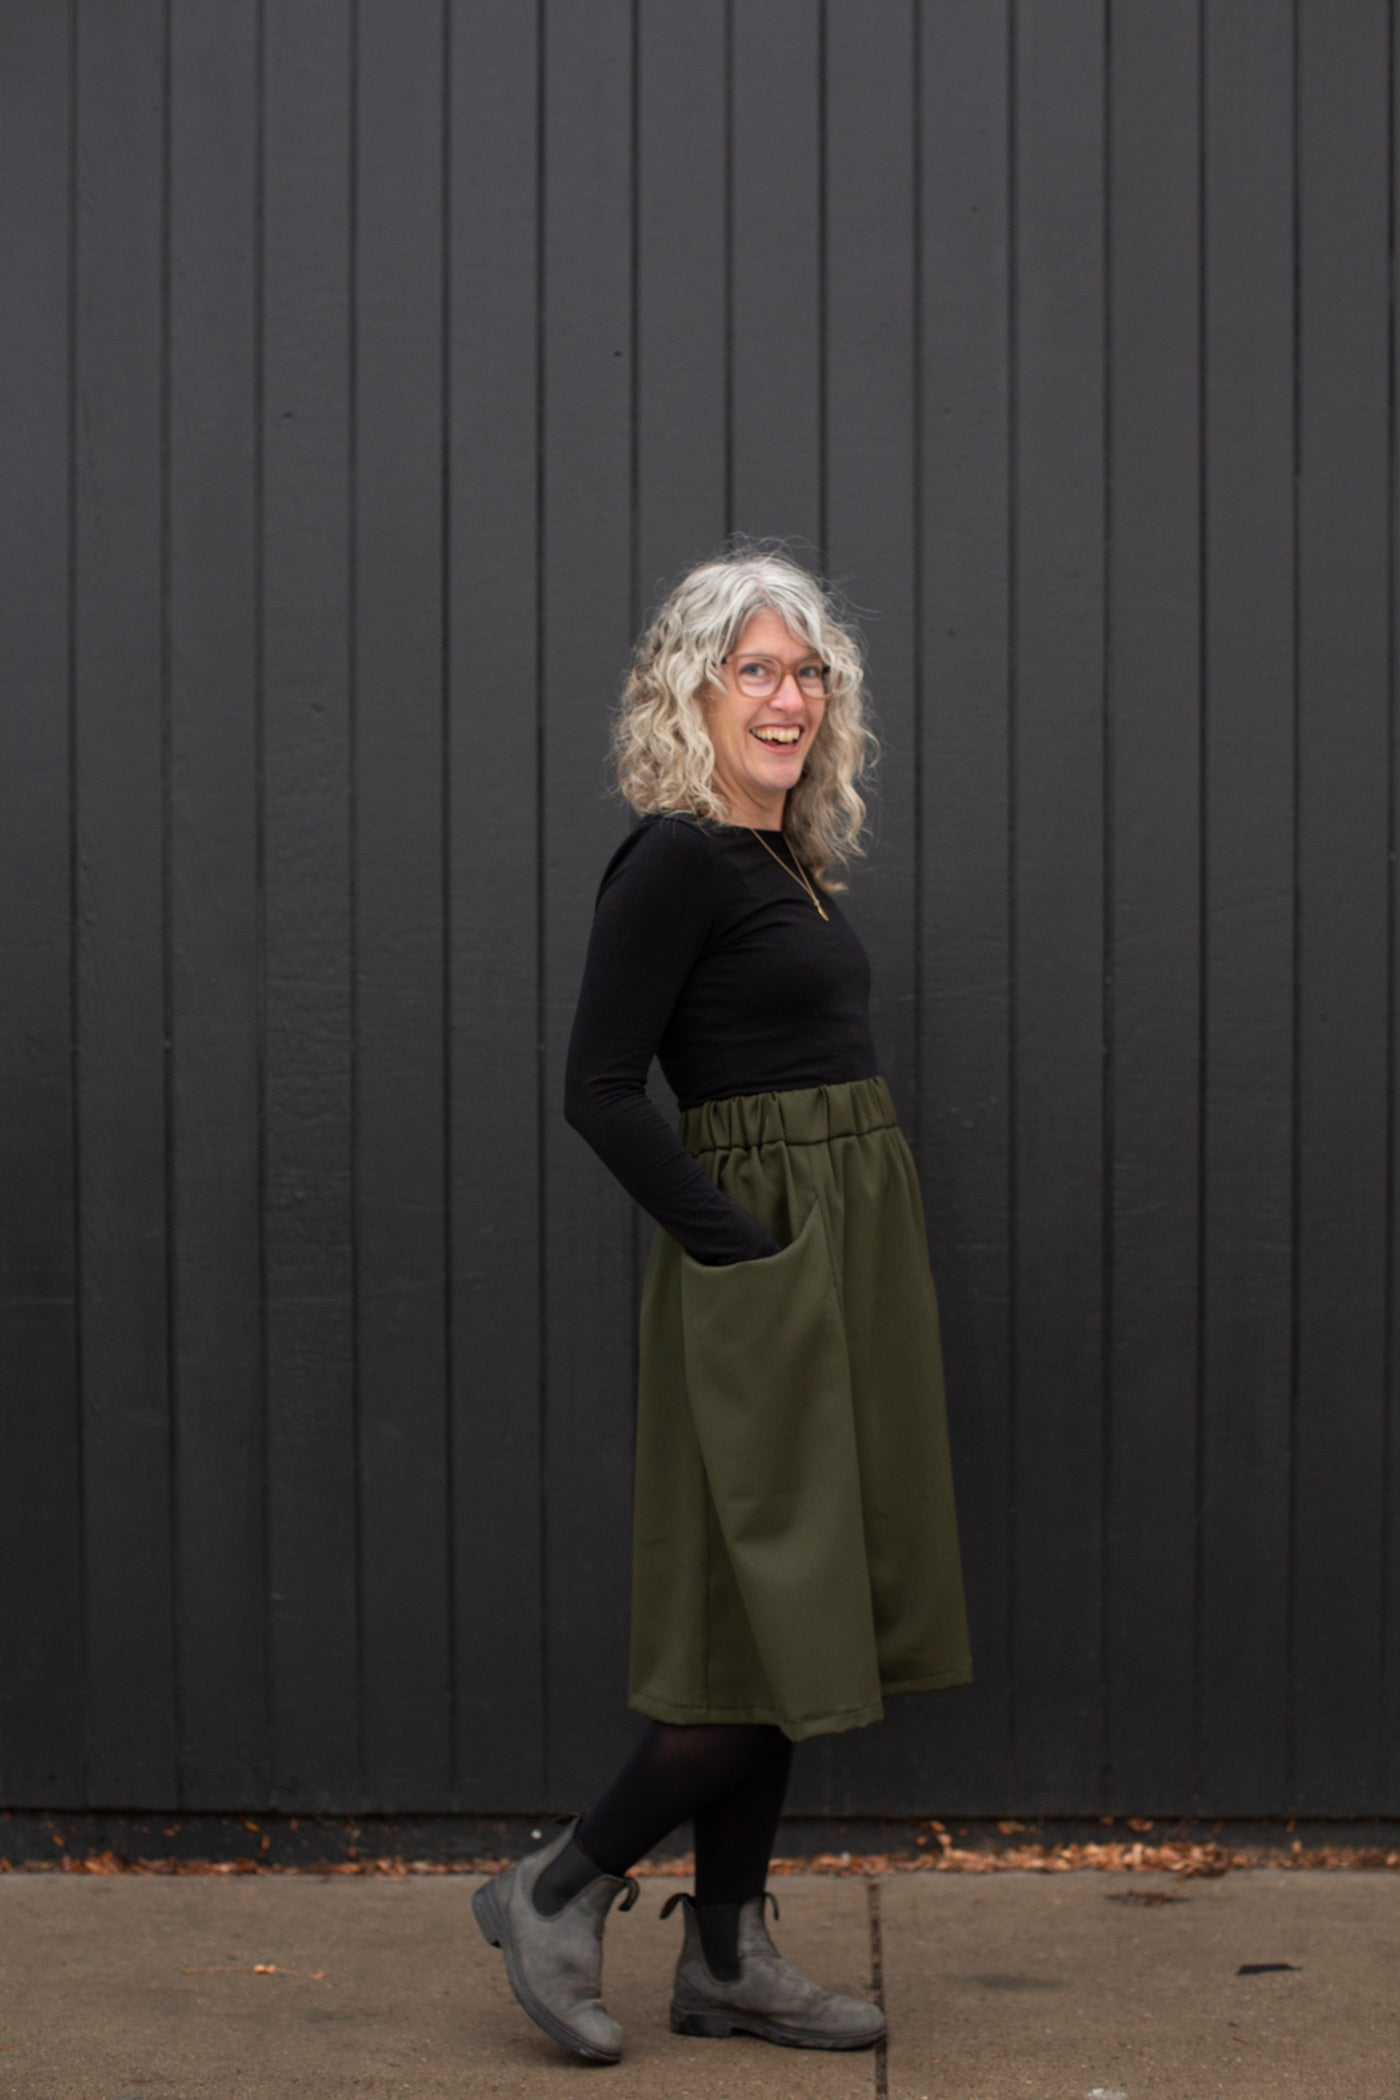 Jaime standing against a black wall in a black long sleeve and olive colored skirt with her hands in her pockets looking at the camera smiling.